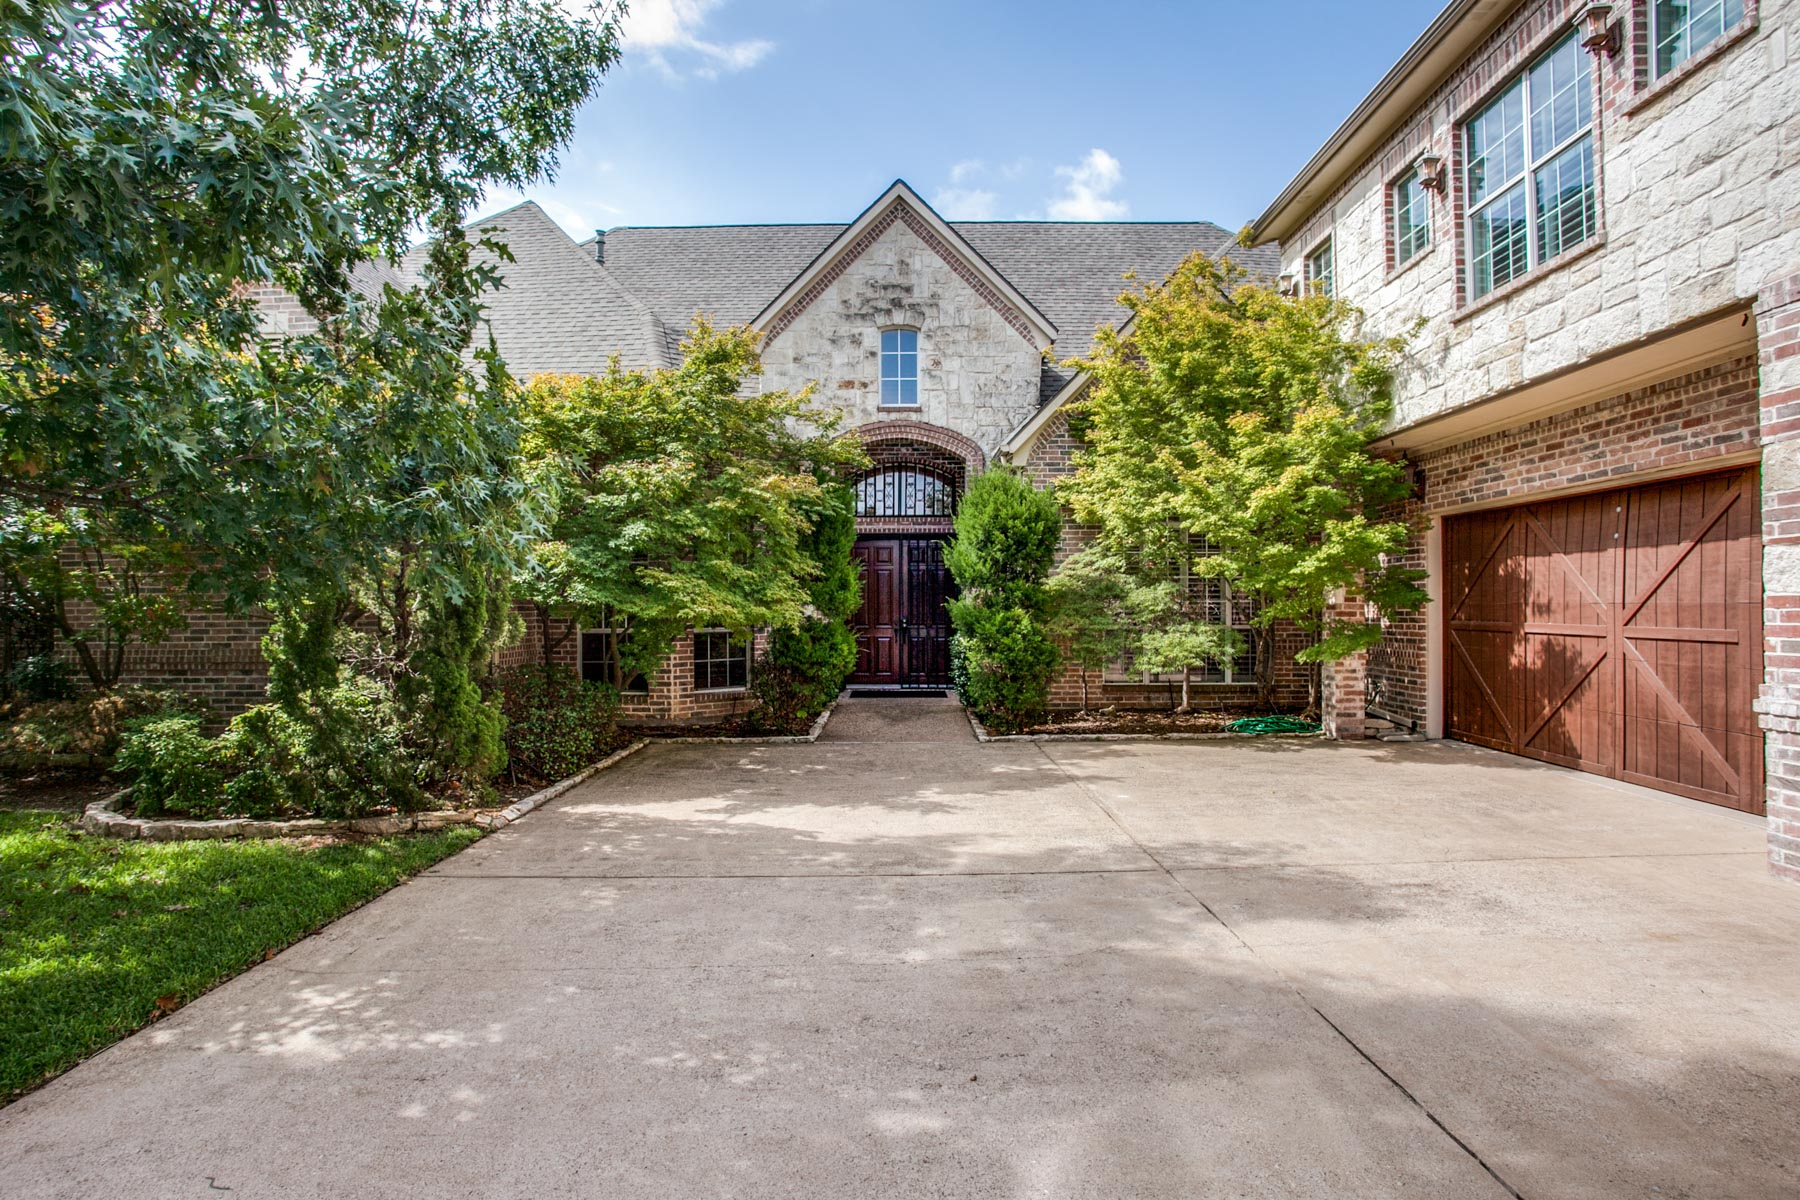 Single Family Home for Sale at Wonderful Traditional 7706 Yamini Drive, Dallas, Texas, 75230 United States